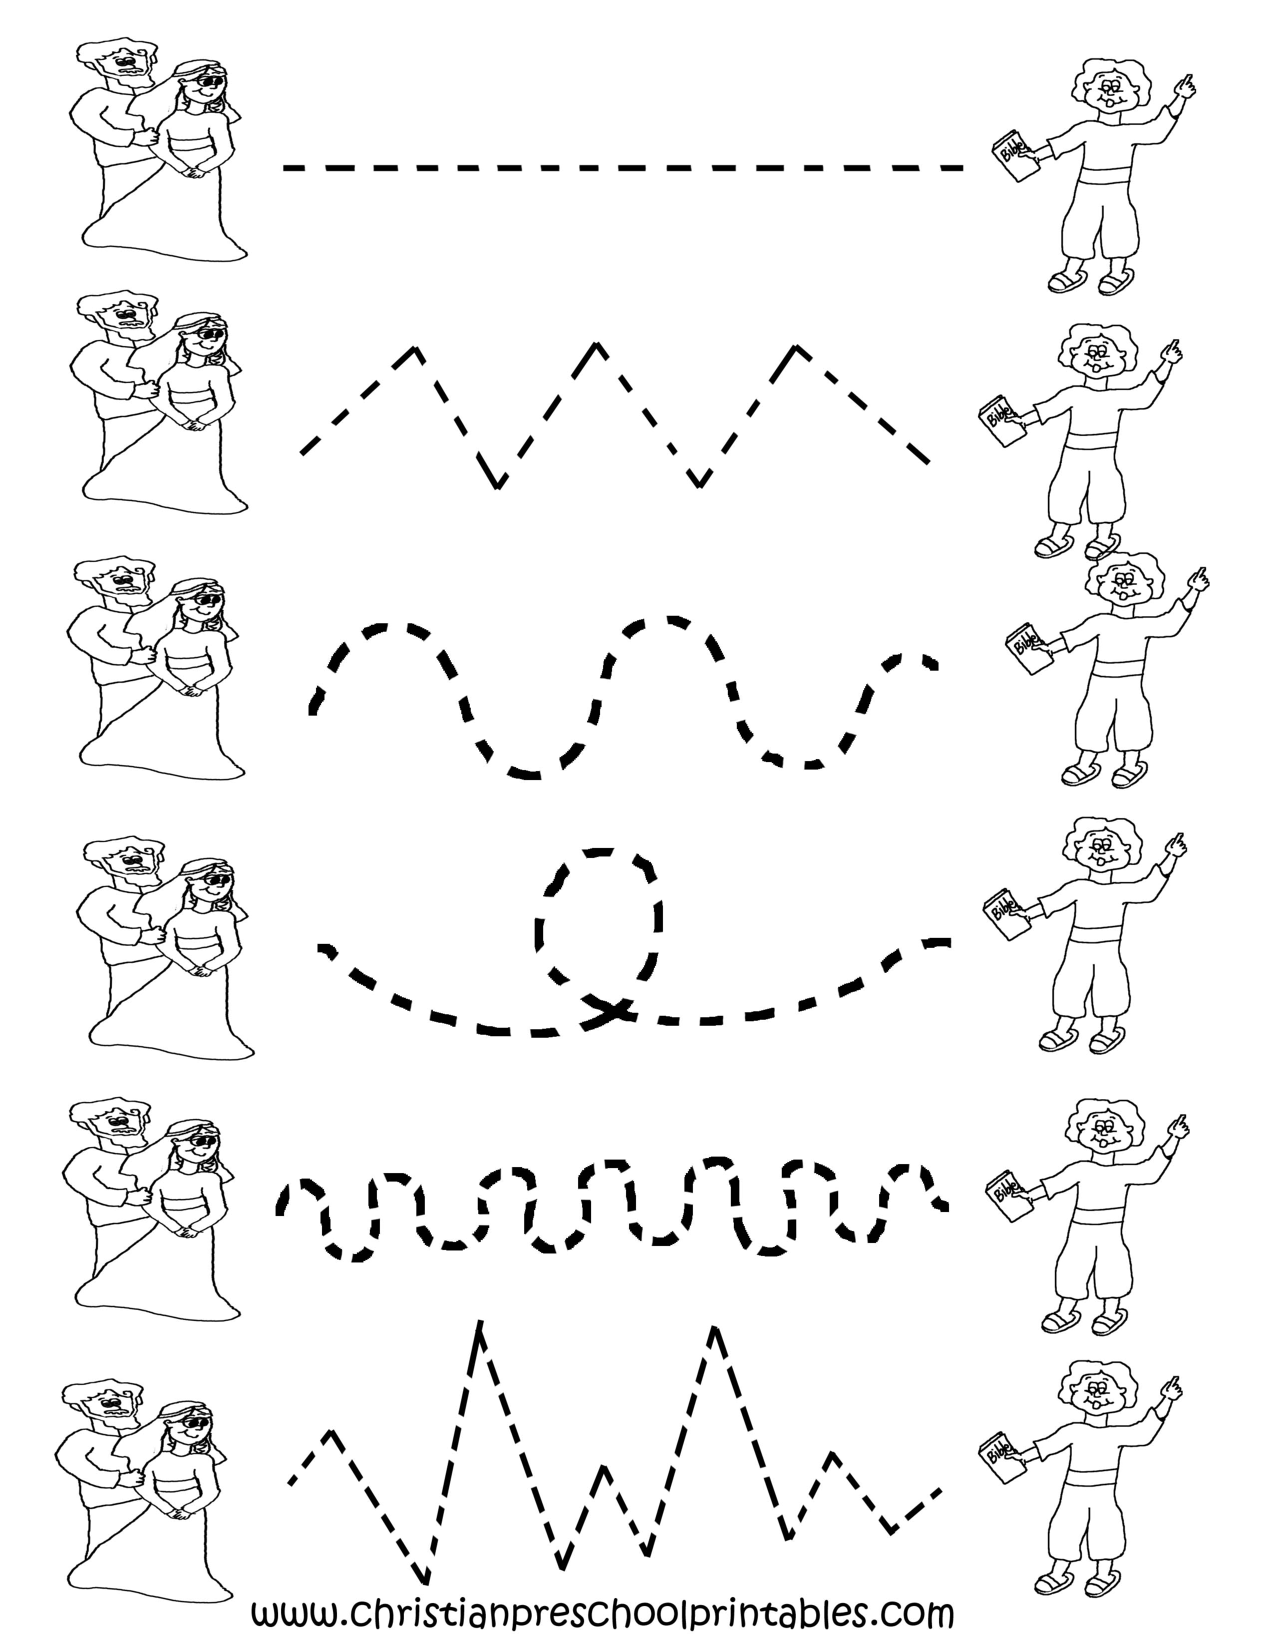 Printables Preschoolers Worksheets kindergarten worksheets preschool printables for kids 16 pictures photos images activities pi